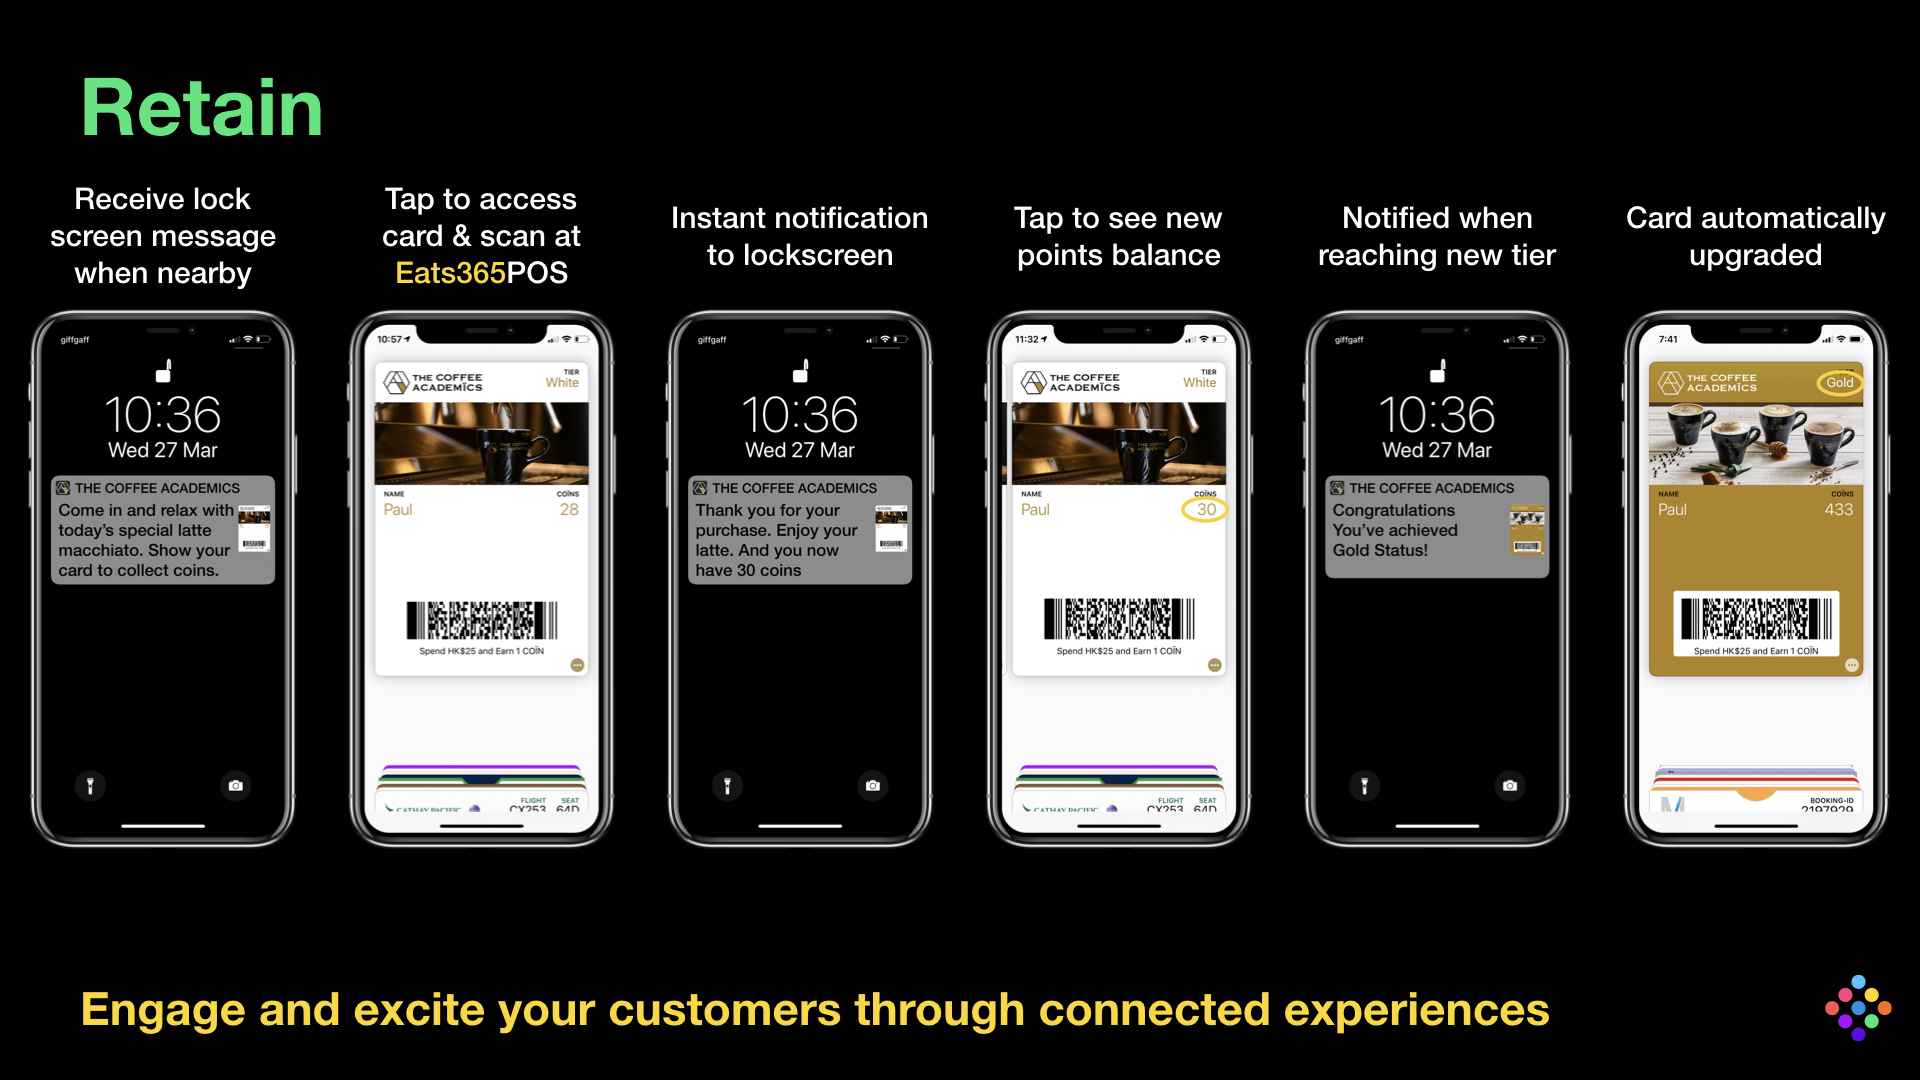 Retain customers with connected experiences - image showing the experience